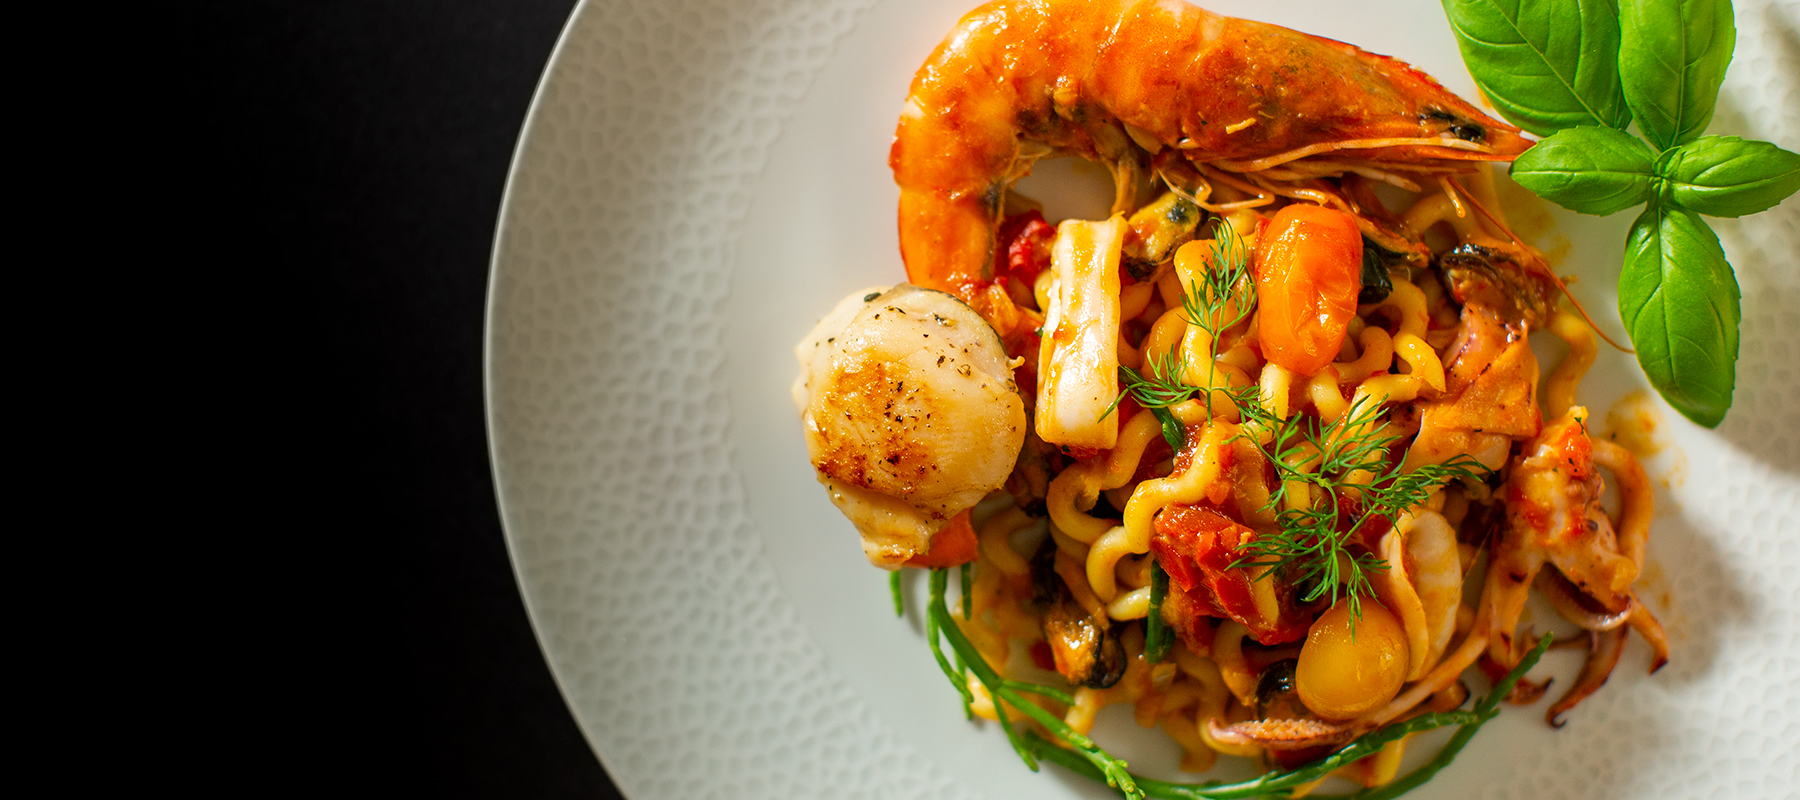 Seafood Pasta, London - Russ Gostelow Photography